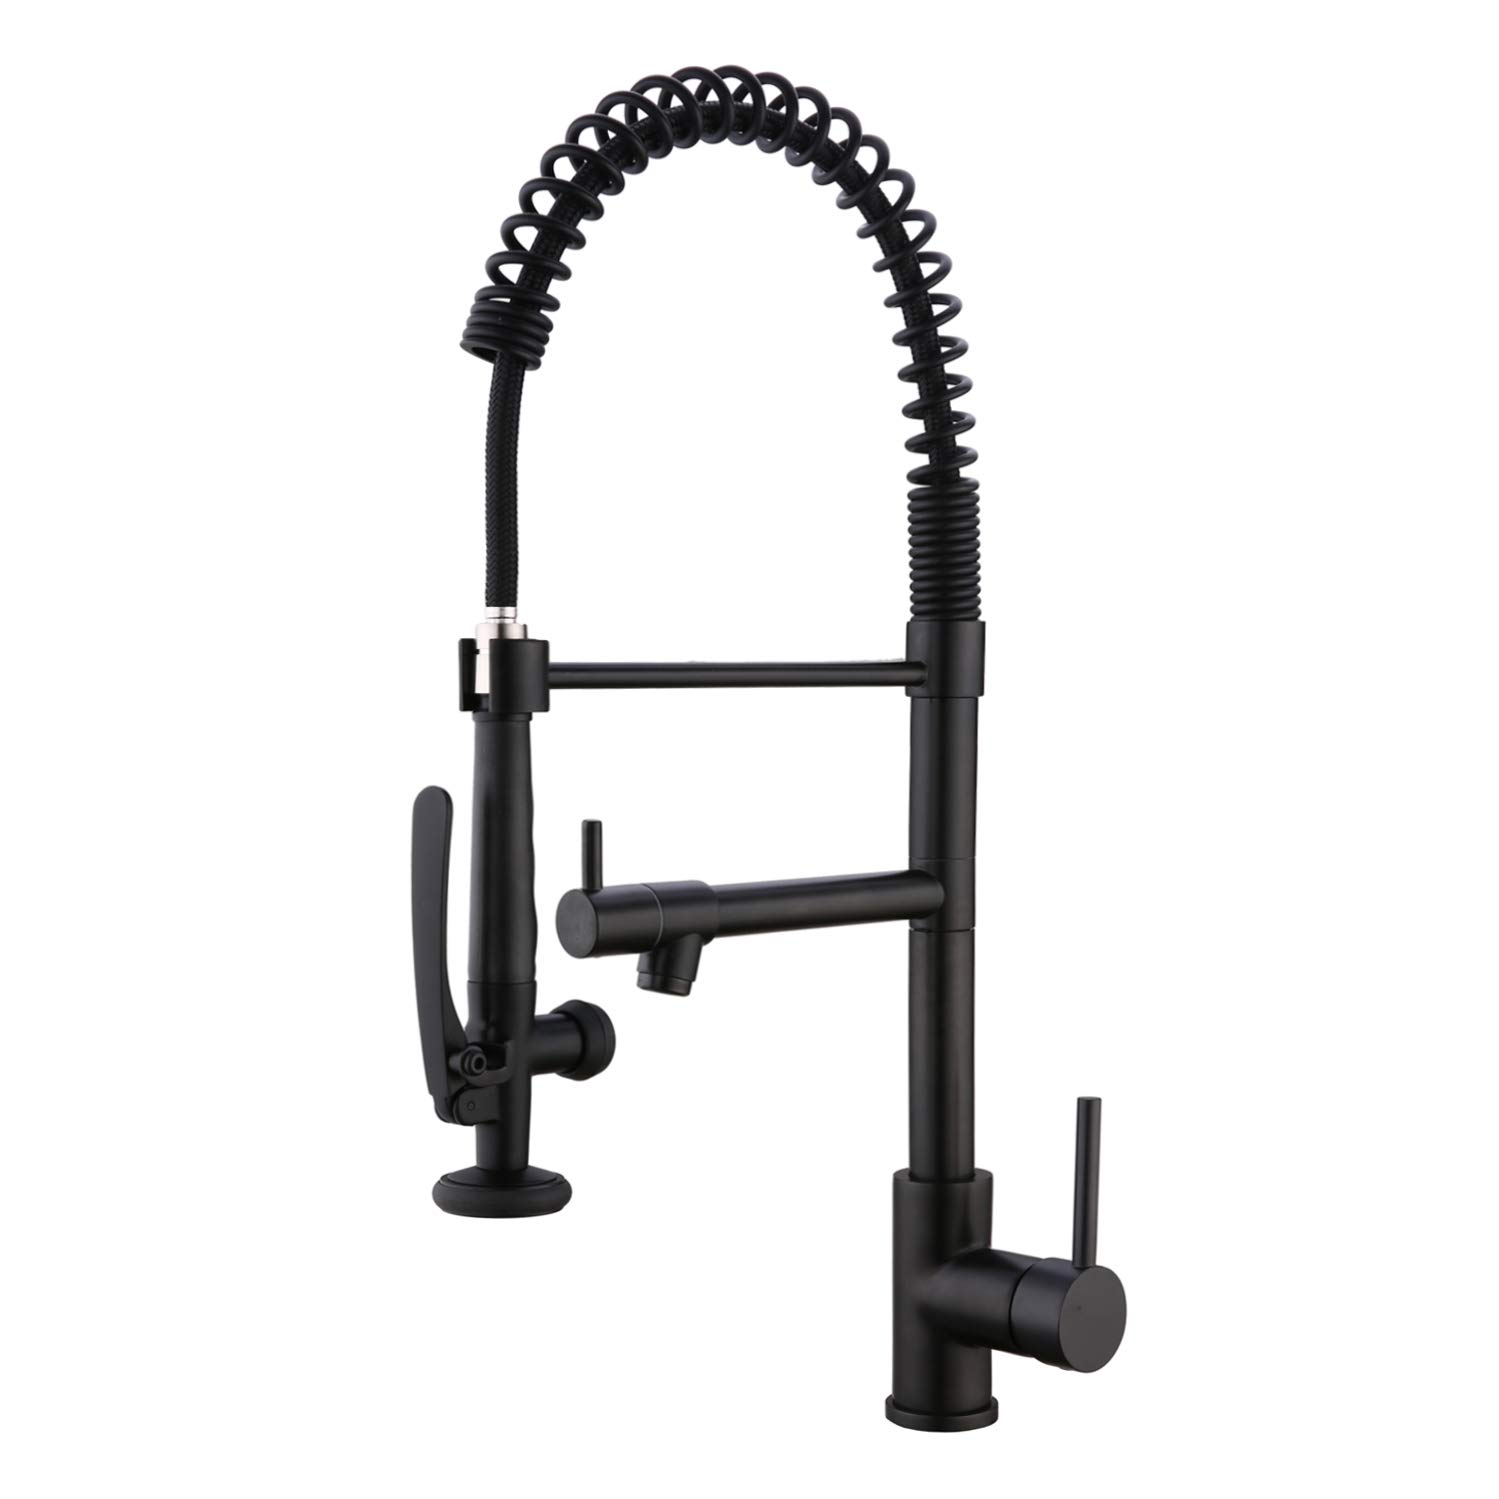 EKRTE Heavy Duty Commercial Style Kitchen Sink Faucet, Single Handle Pre-Rinse Spring Sprayer Kitchen Faucets, High Arc Pull Down Matte Black Kitchen Faucet